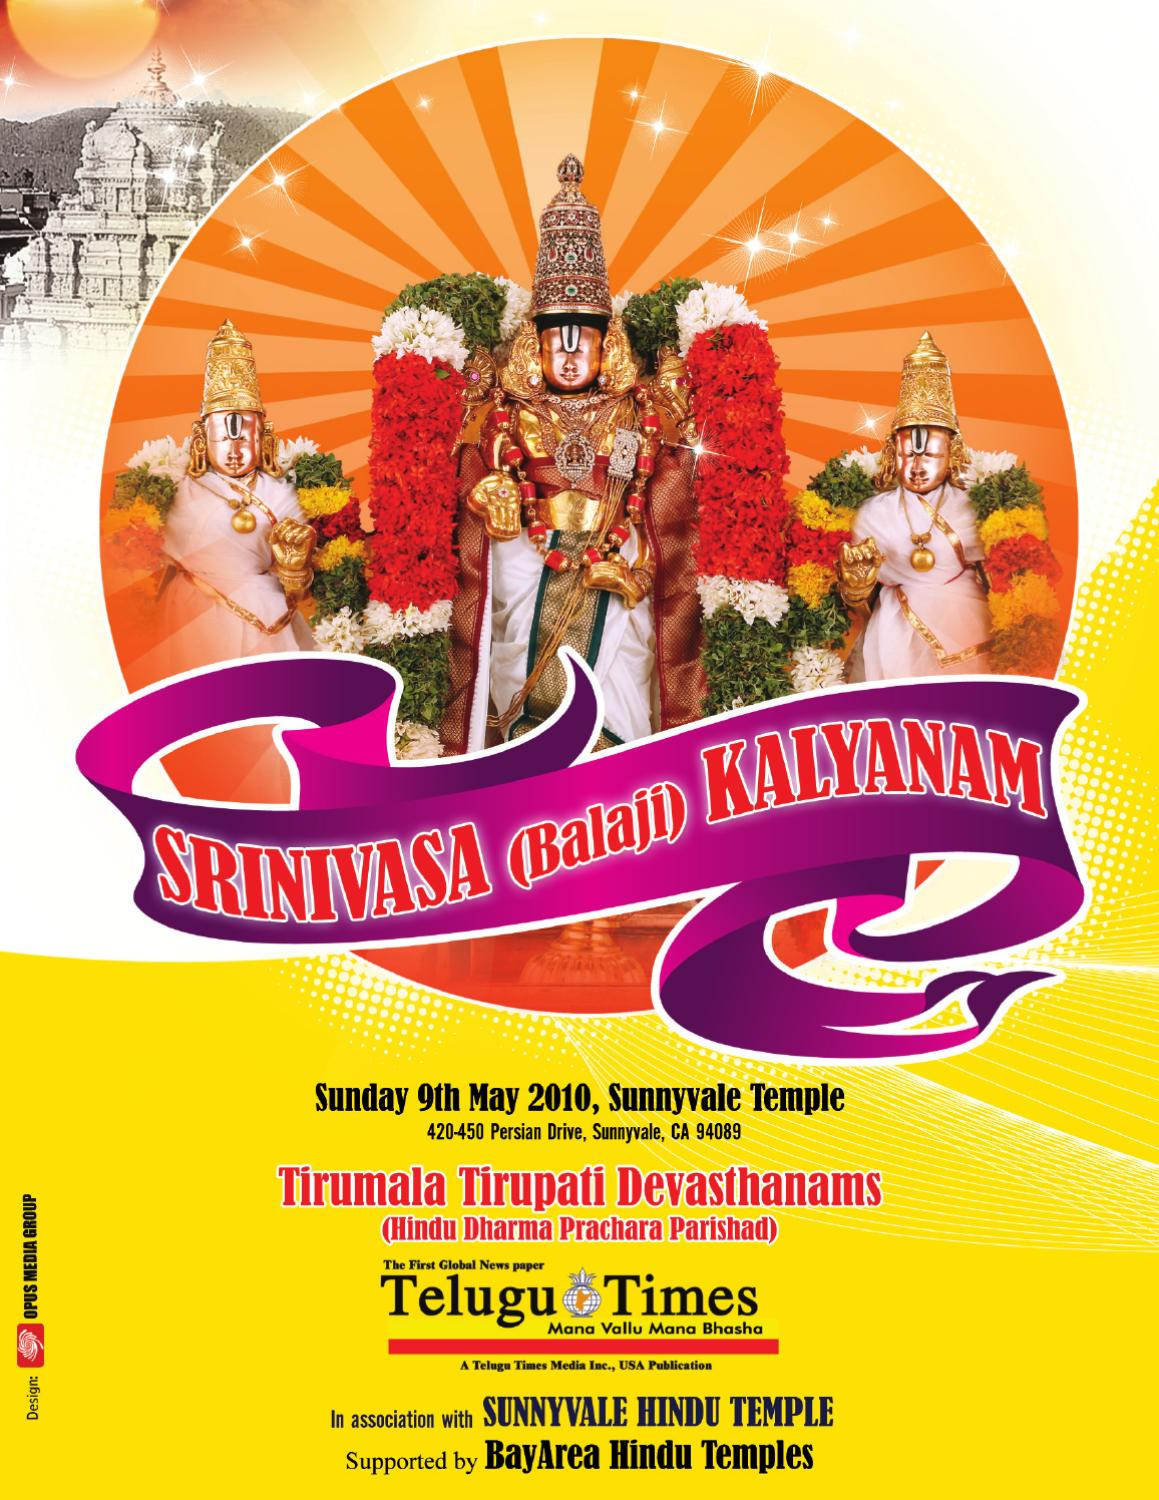 Srinivasa_Kalyanam by mallesh sampangi - issuu